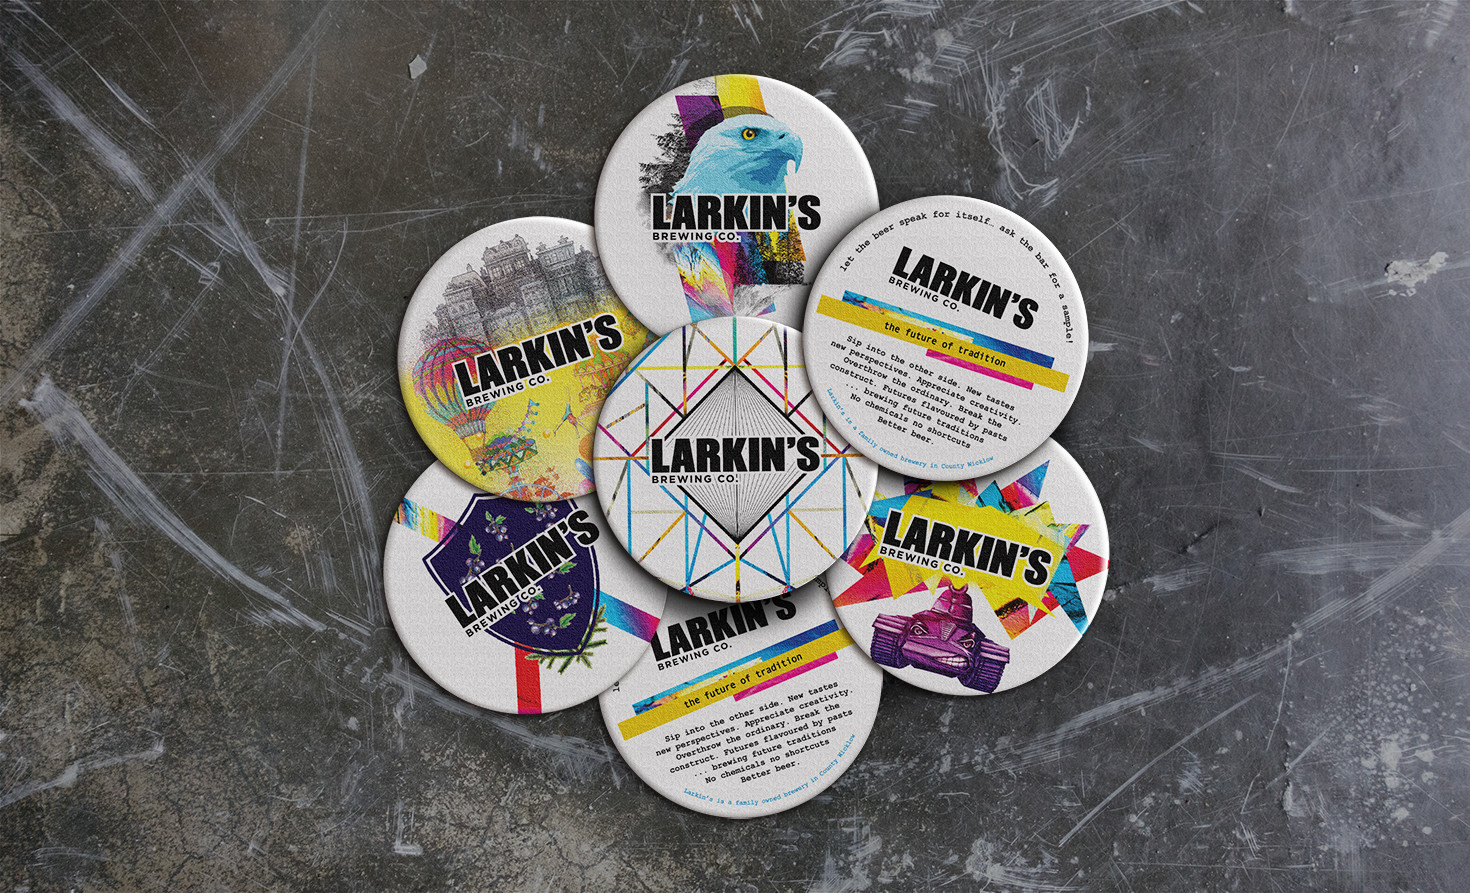 Larkin's Brewing Co. Promotional Elements for Campaign Design